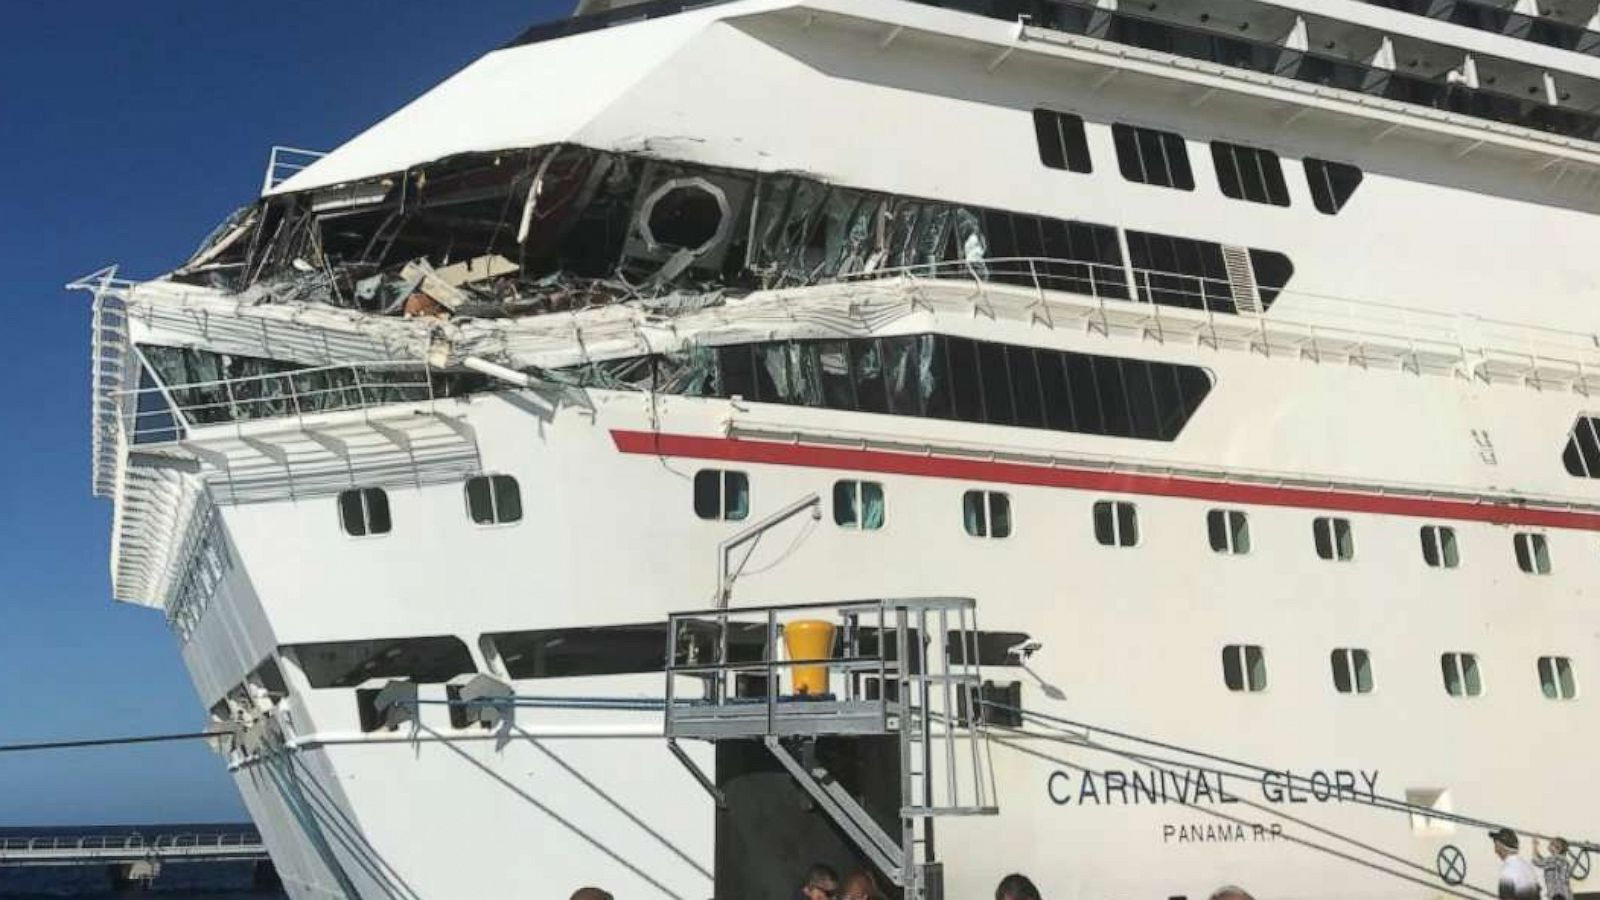 Carnival Cruise Assessing Damage To 2 Ships After Collision Abc News